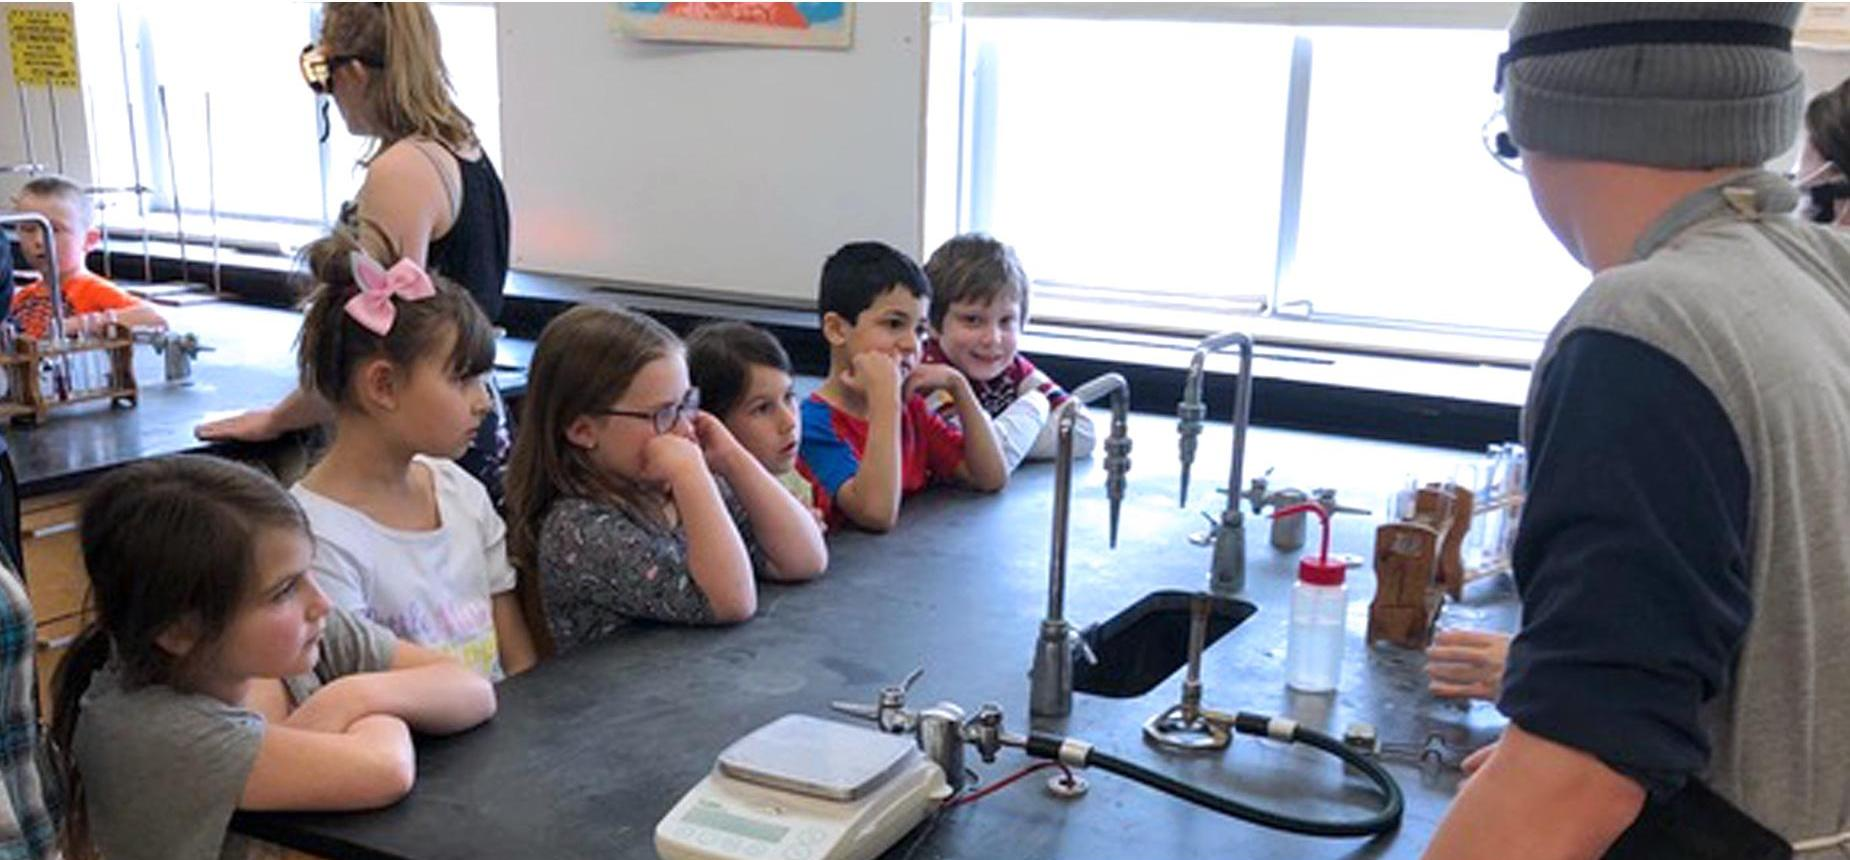 Elementary students watching a chemistry experiment in the high school science room